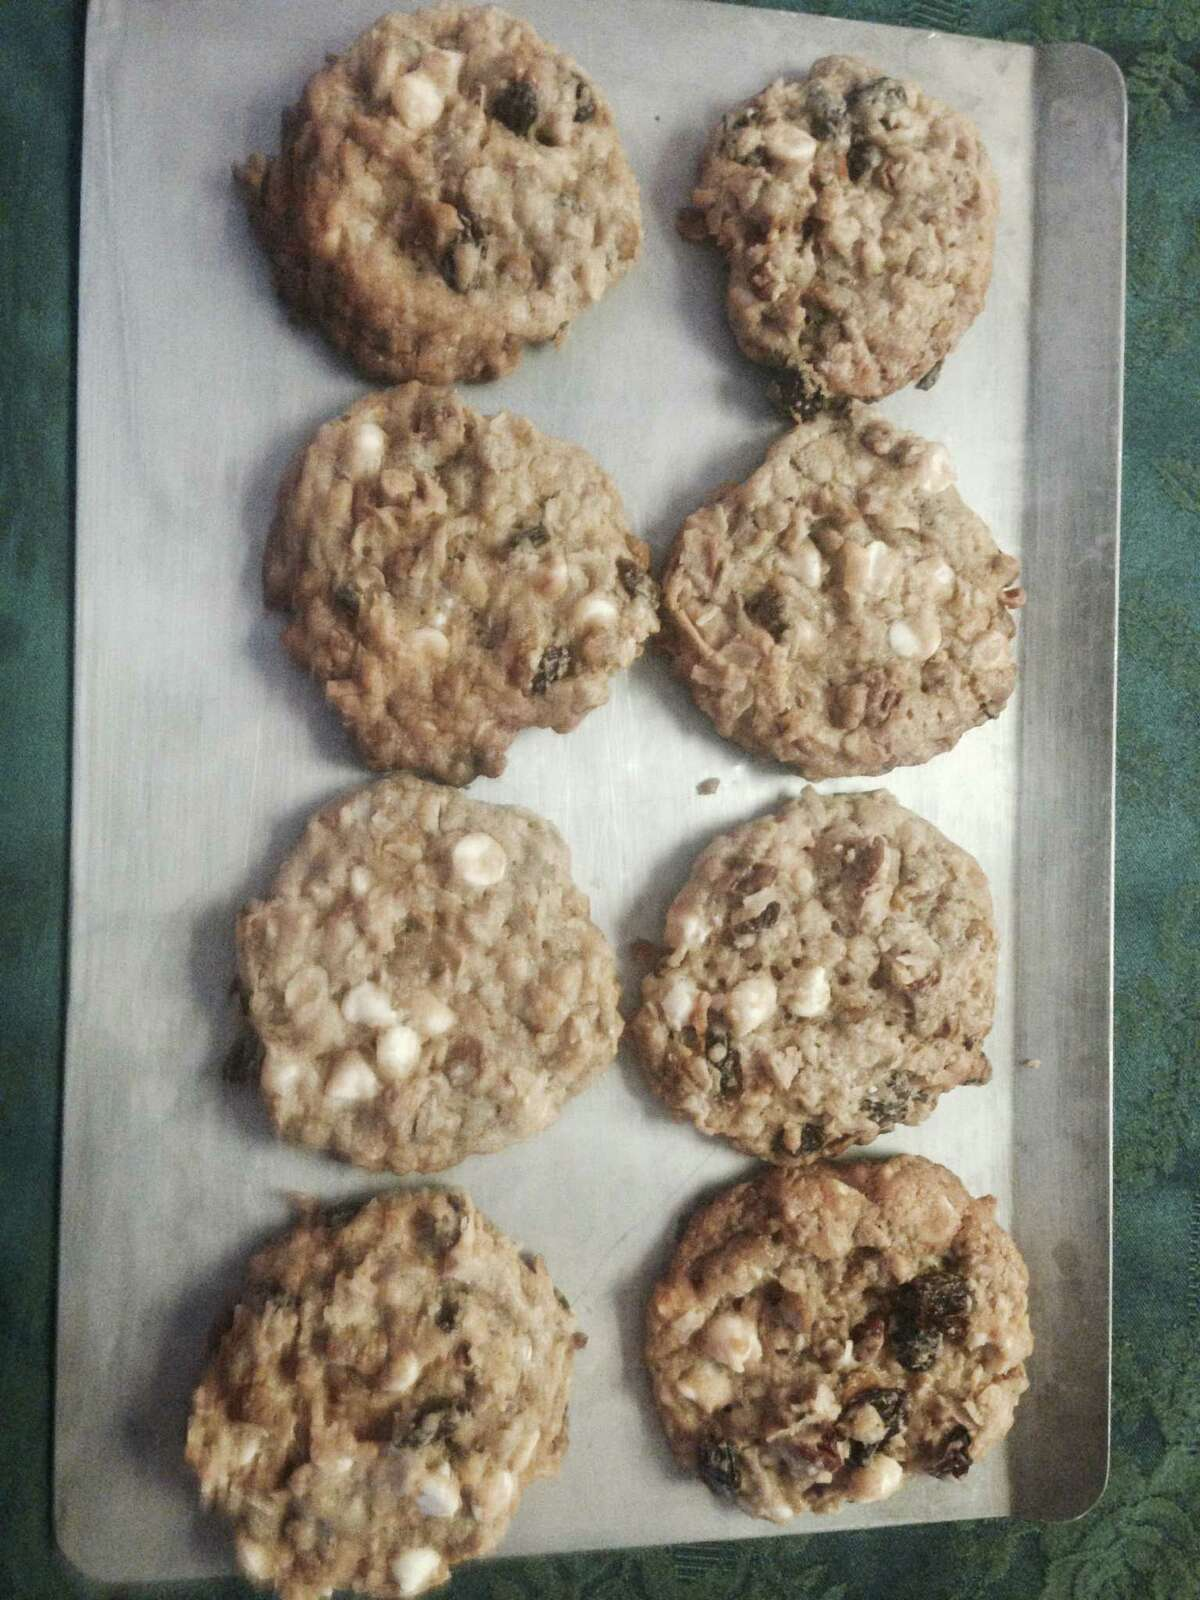 The building-block ingredients of many holiday cookies include nuts, chocolate chips, vanilla and flour. Judging this year's recipe submissions were Flavor editor Diane Cowen, food editor Greg Morago and Kitchen to Kitchen writer Elizabeth Pudwill.